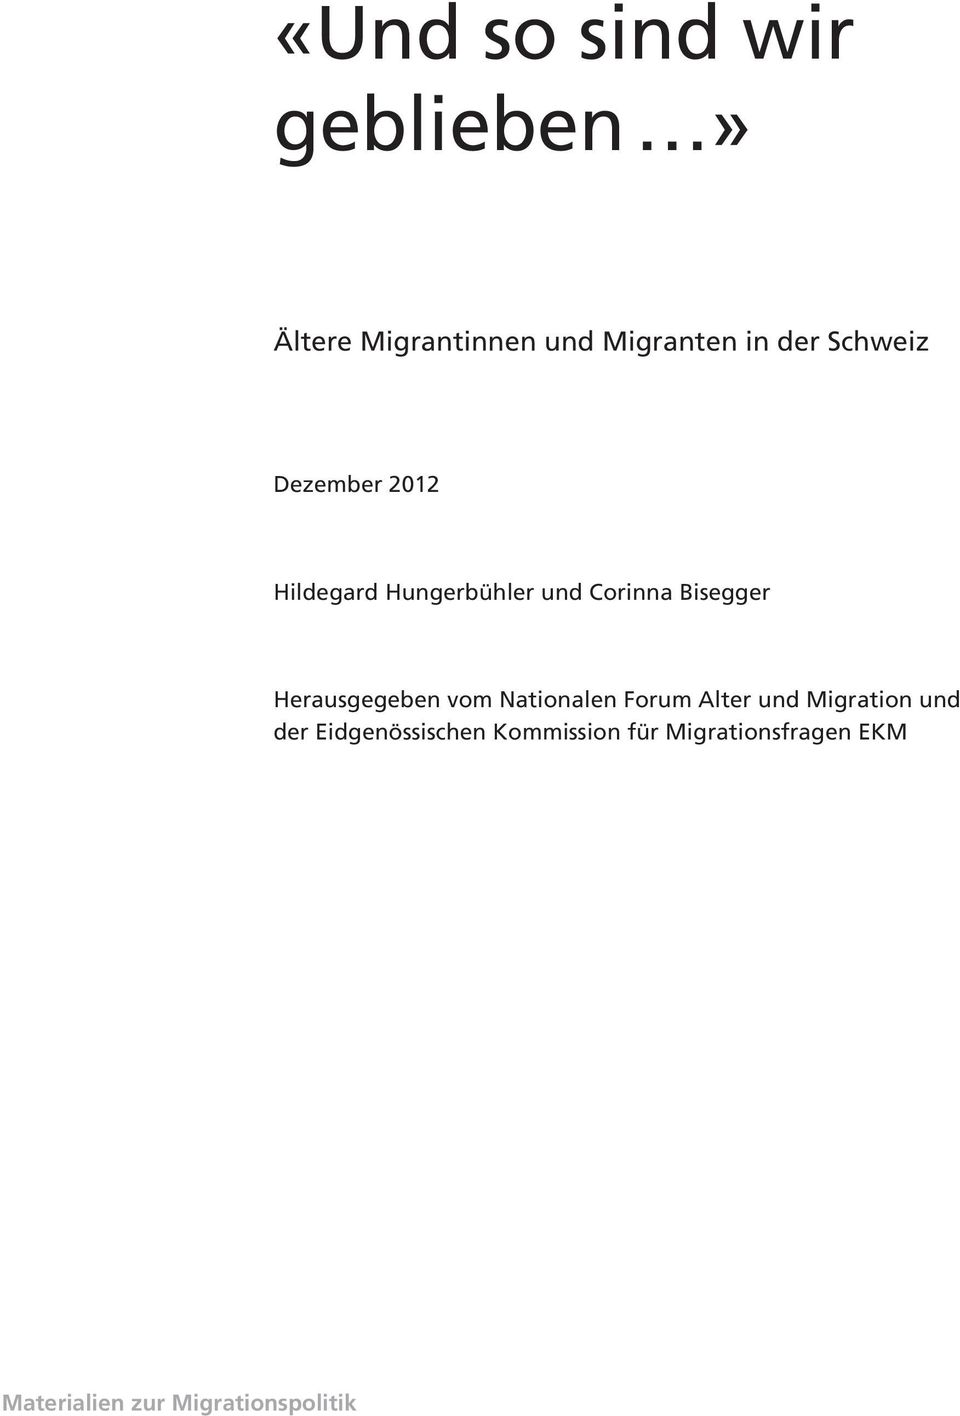 Nationalen Forum Alter und Migration und der